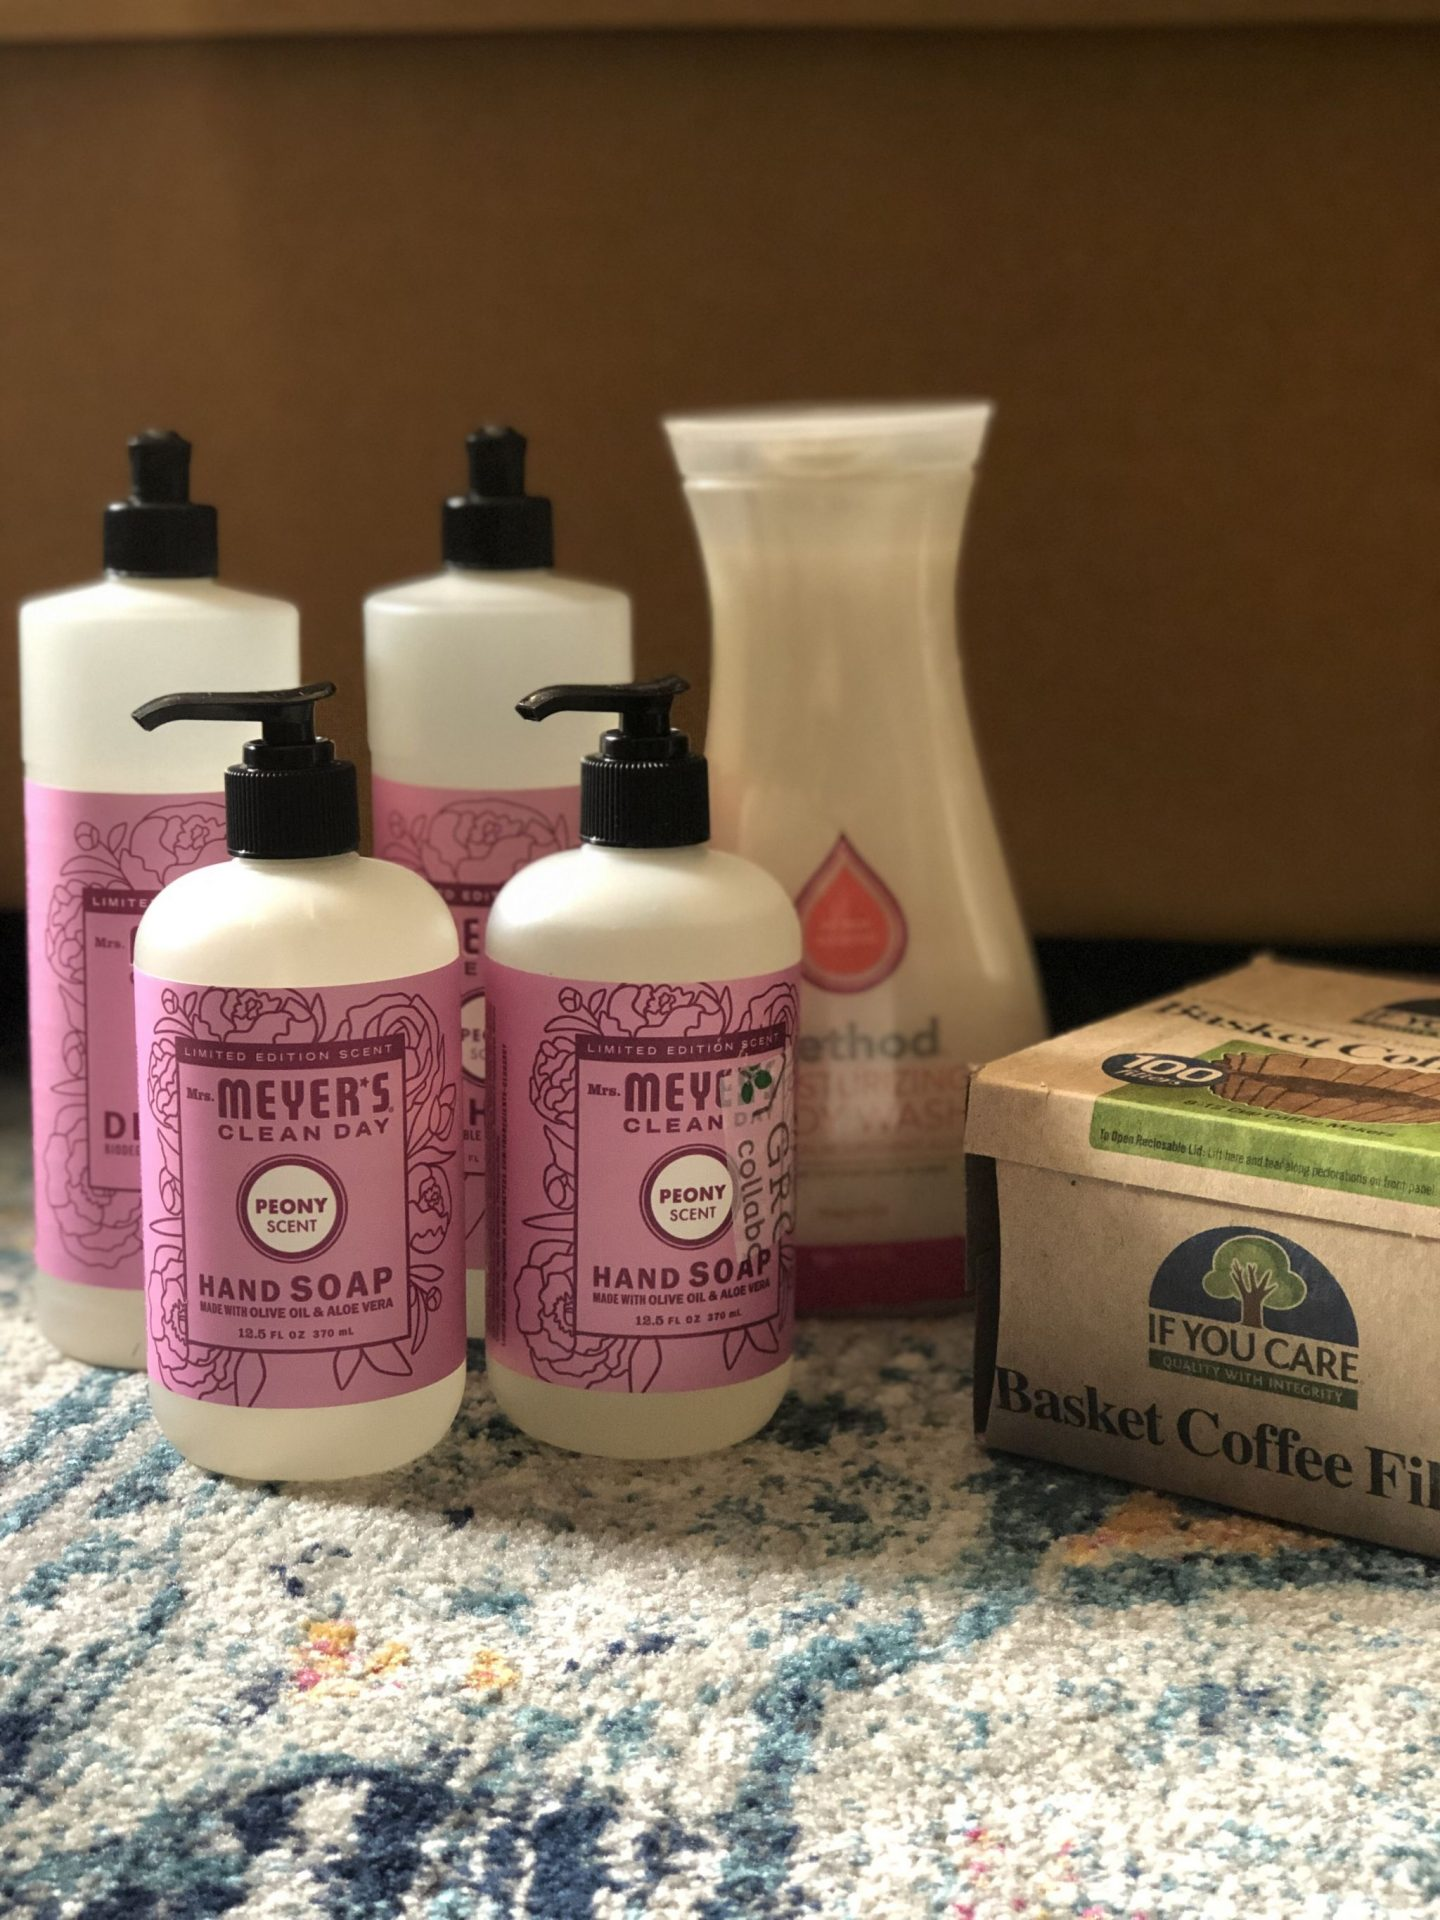 North Carolina blogger Rebecca Lately shares her Grove Collaborative April 2019 order. Check out her favorite scent from the Mrs. Meyer's spring line!